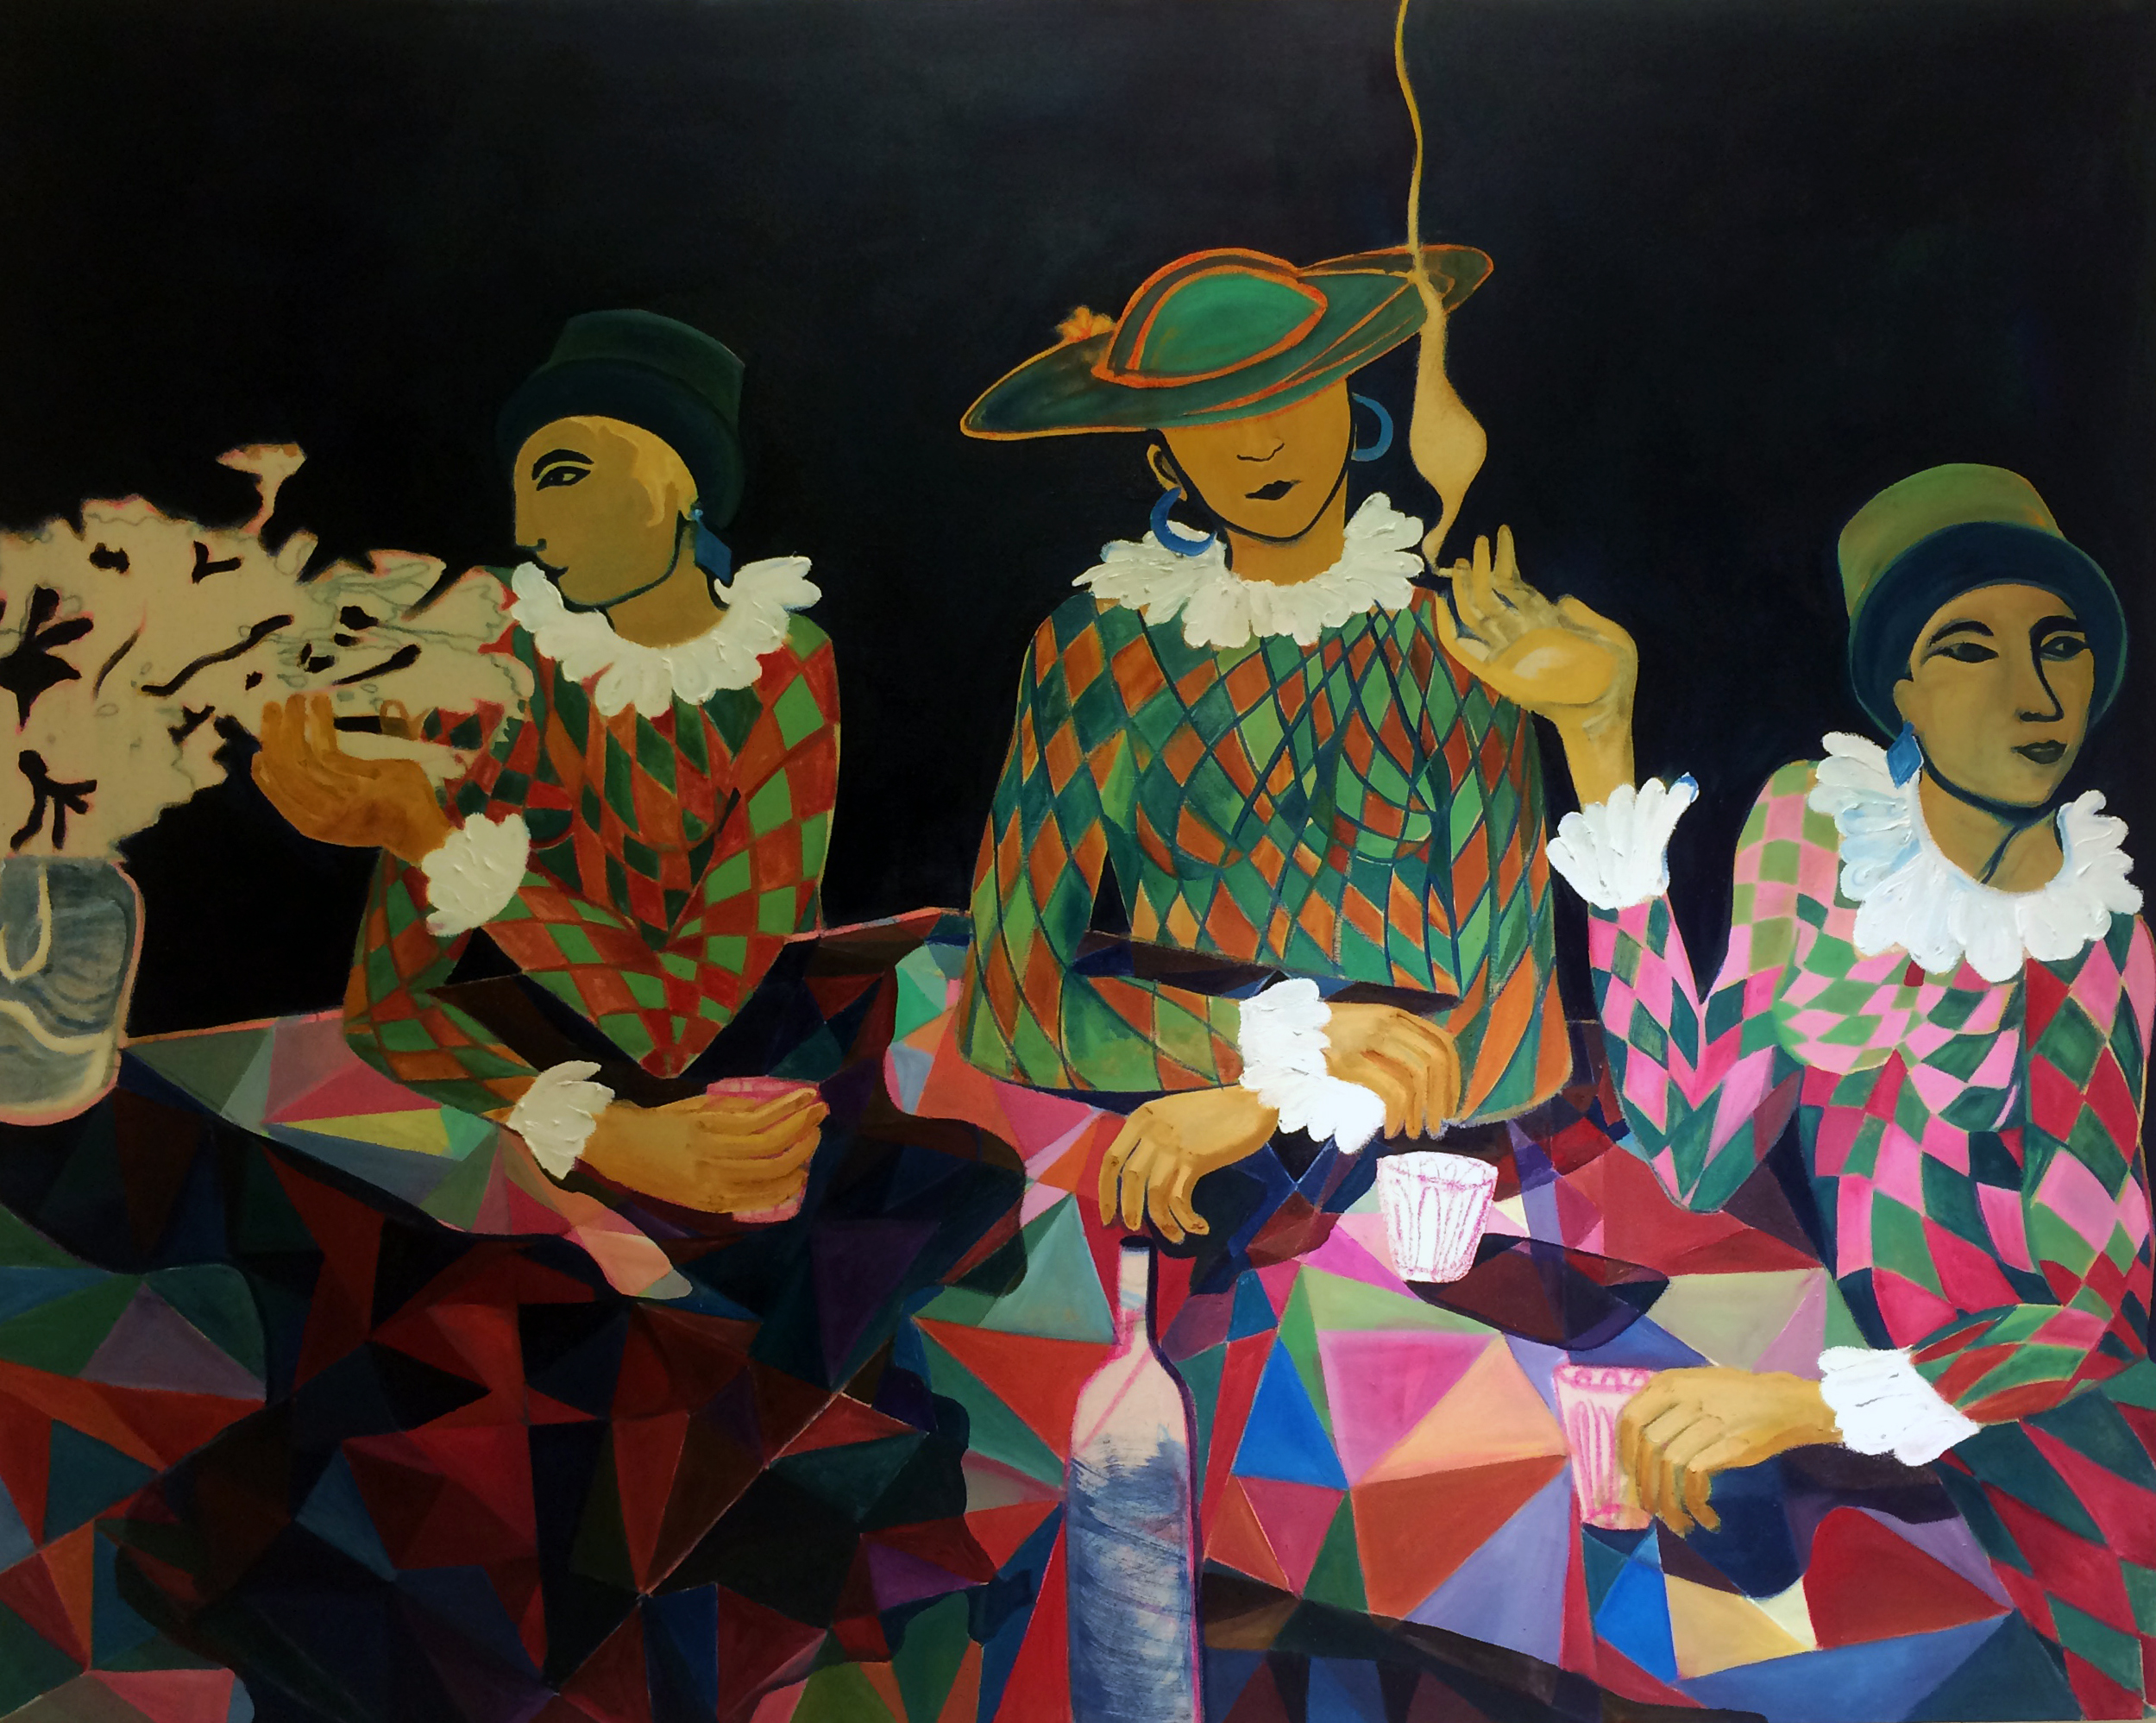 The Three Fates Contemplating on Humanity   Oil on canvas, 1.20 x 1.50 m / 4x5 ft